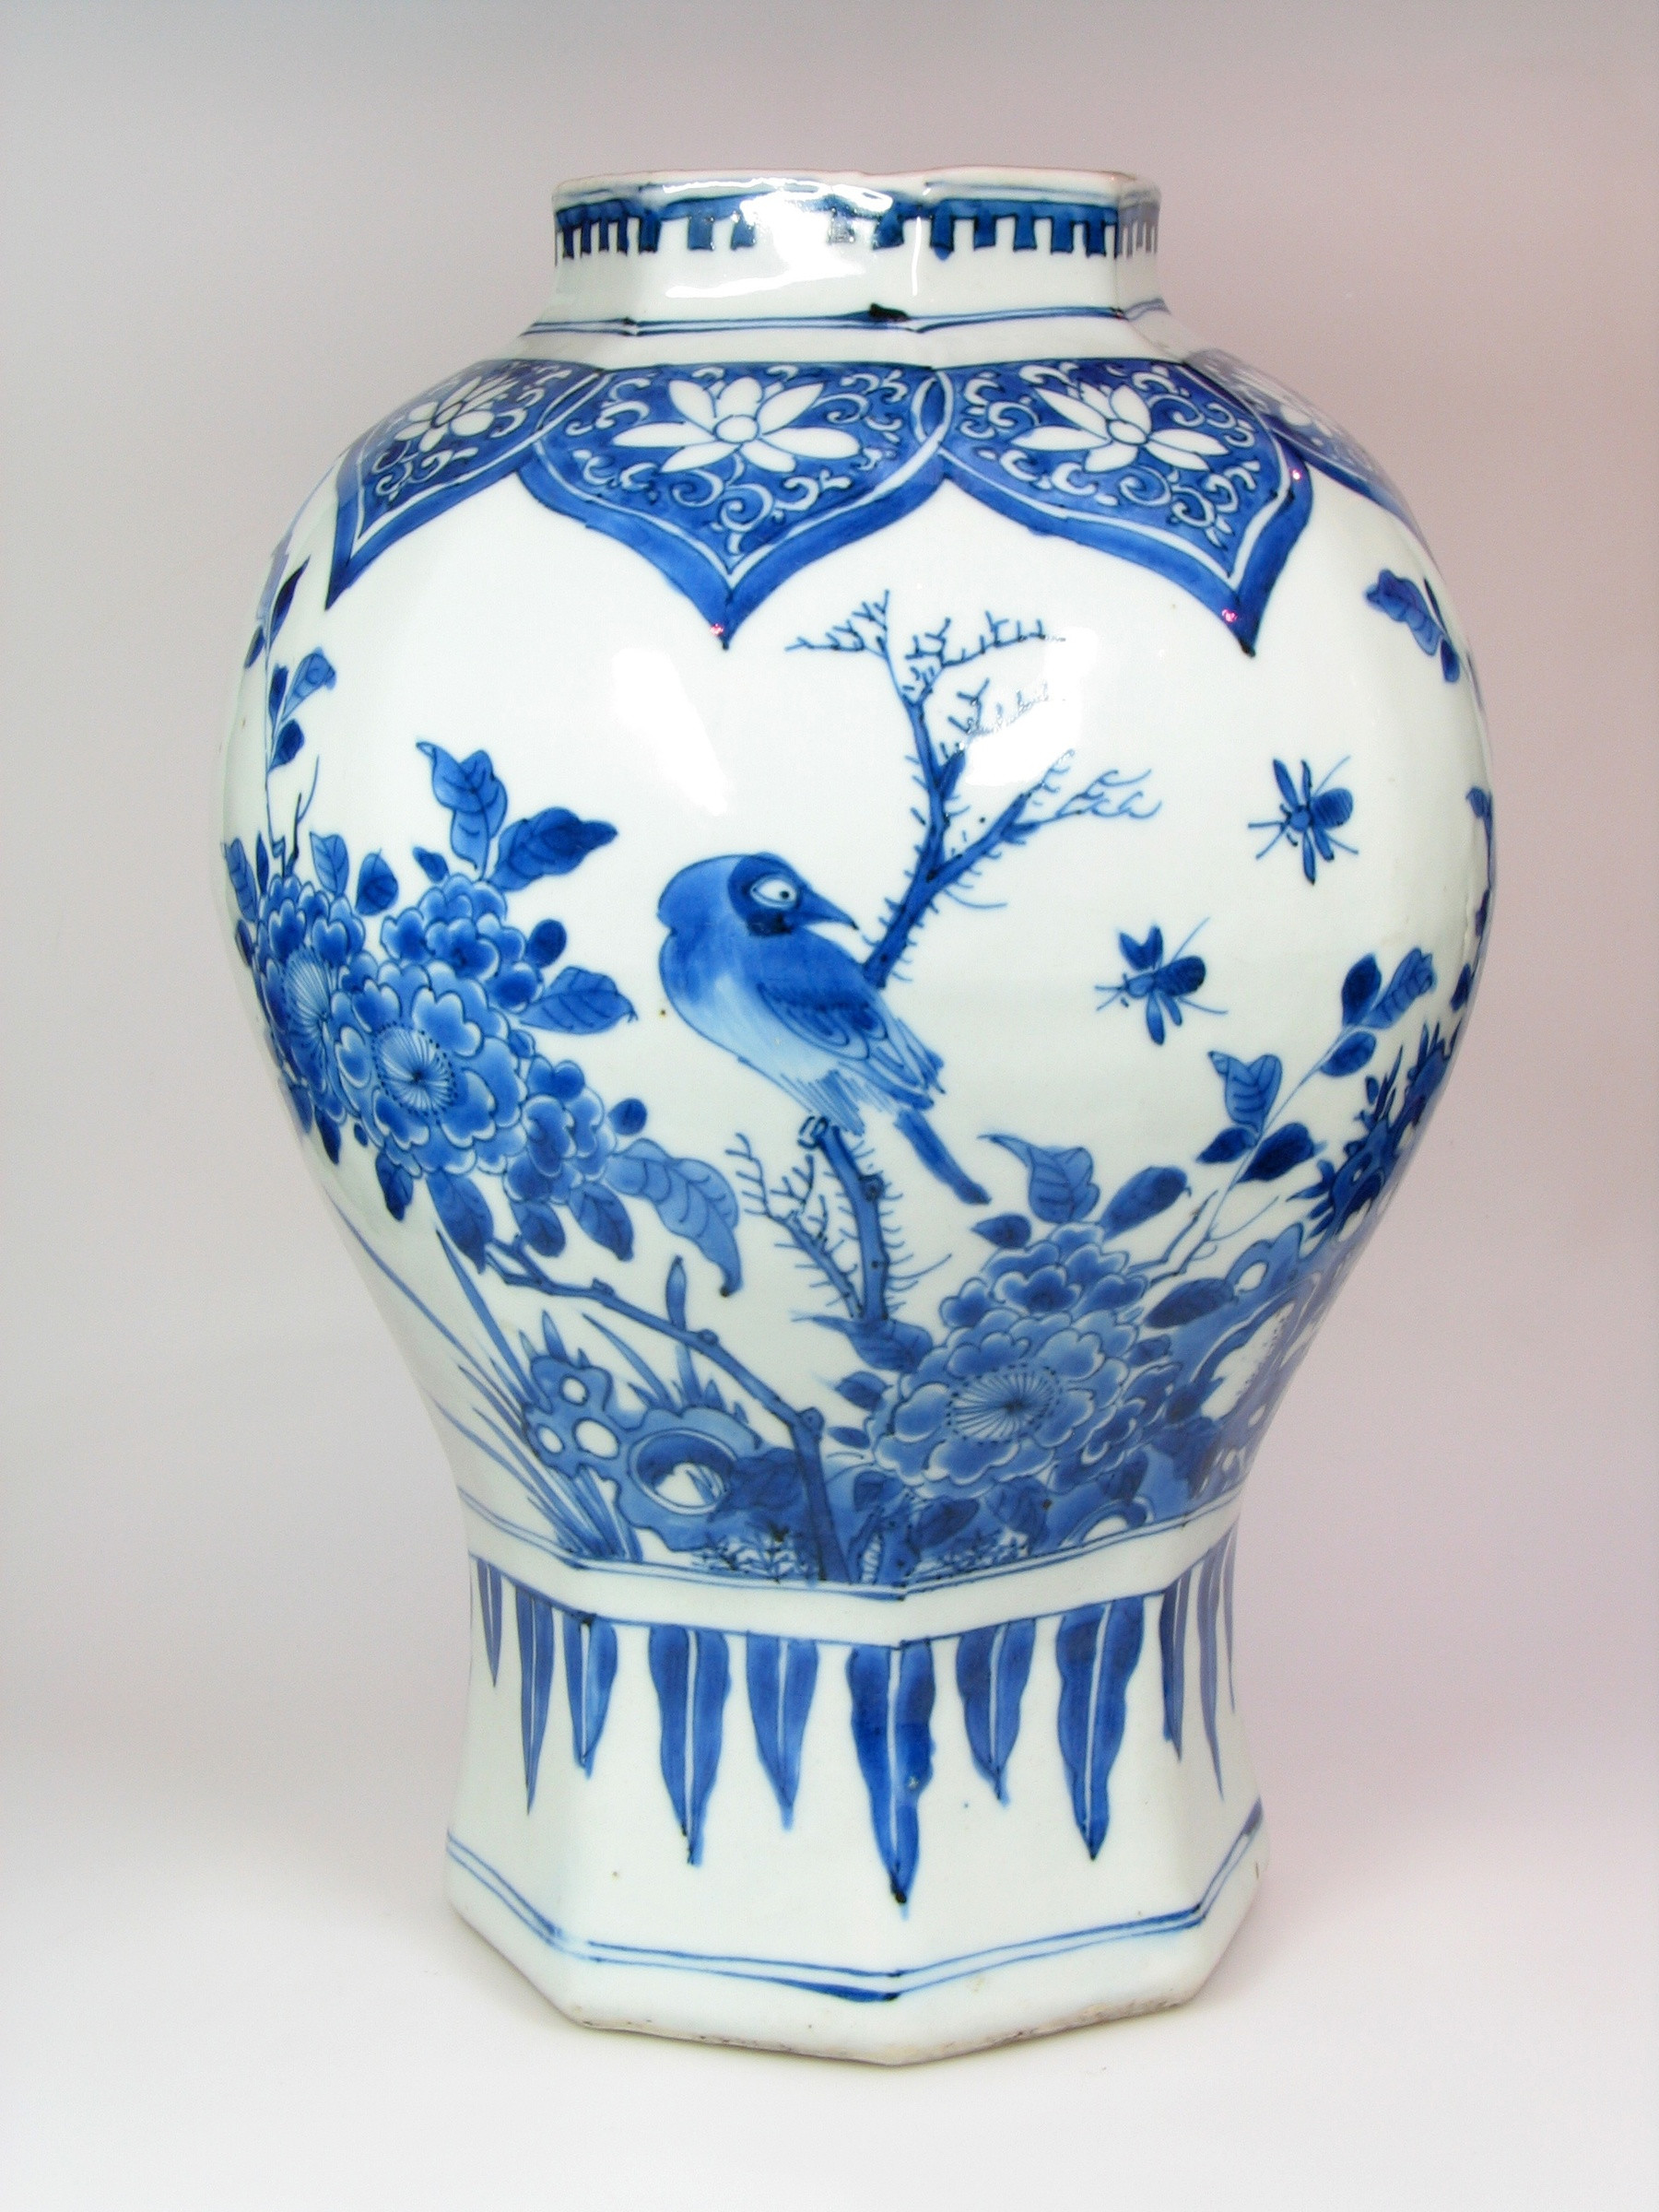 17 attractive Small Cobalt Blue Vase 2021 free download small cobalt blue vase of a fine chinese blue white vase transitional 1630 1660 anita gray throughout a fine chinese blue white vase